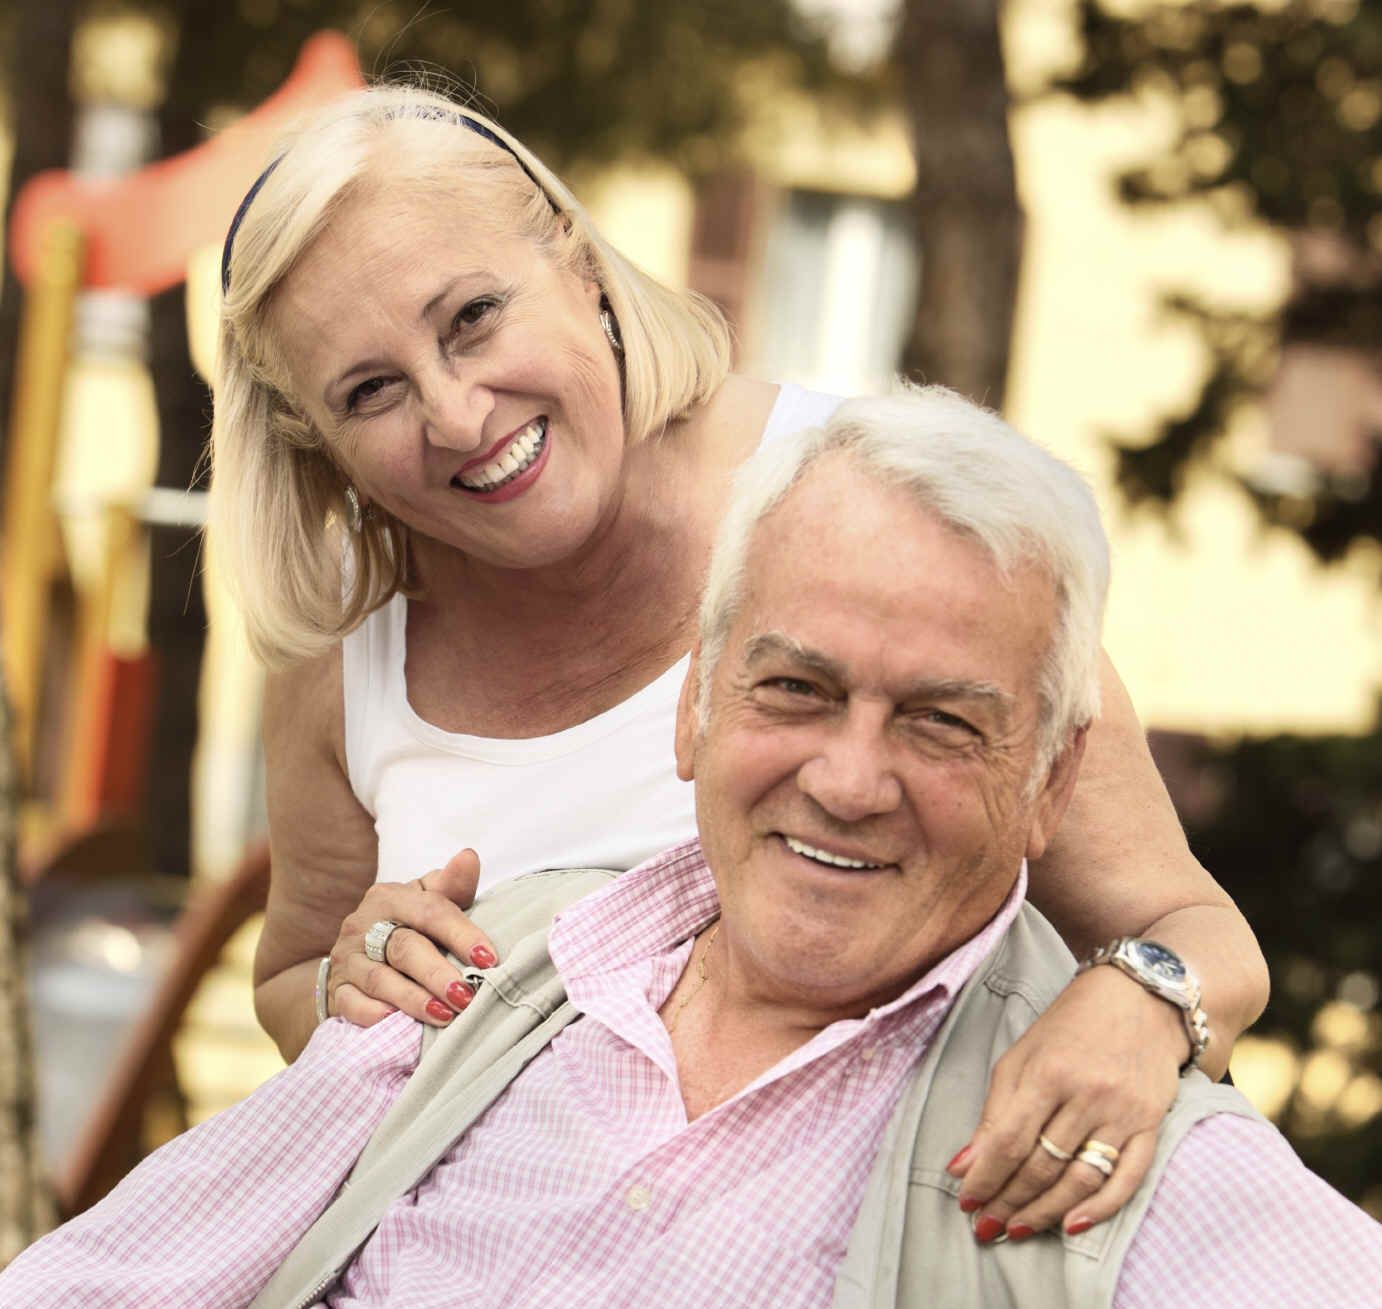 Kurt and me Life insurance for seniors, Dental insurance